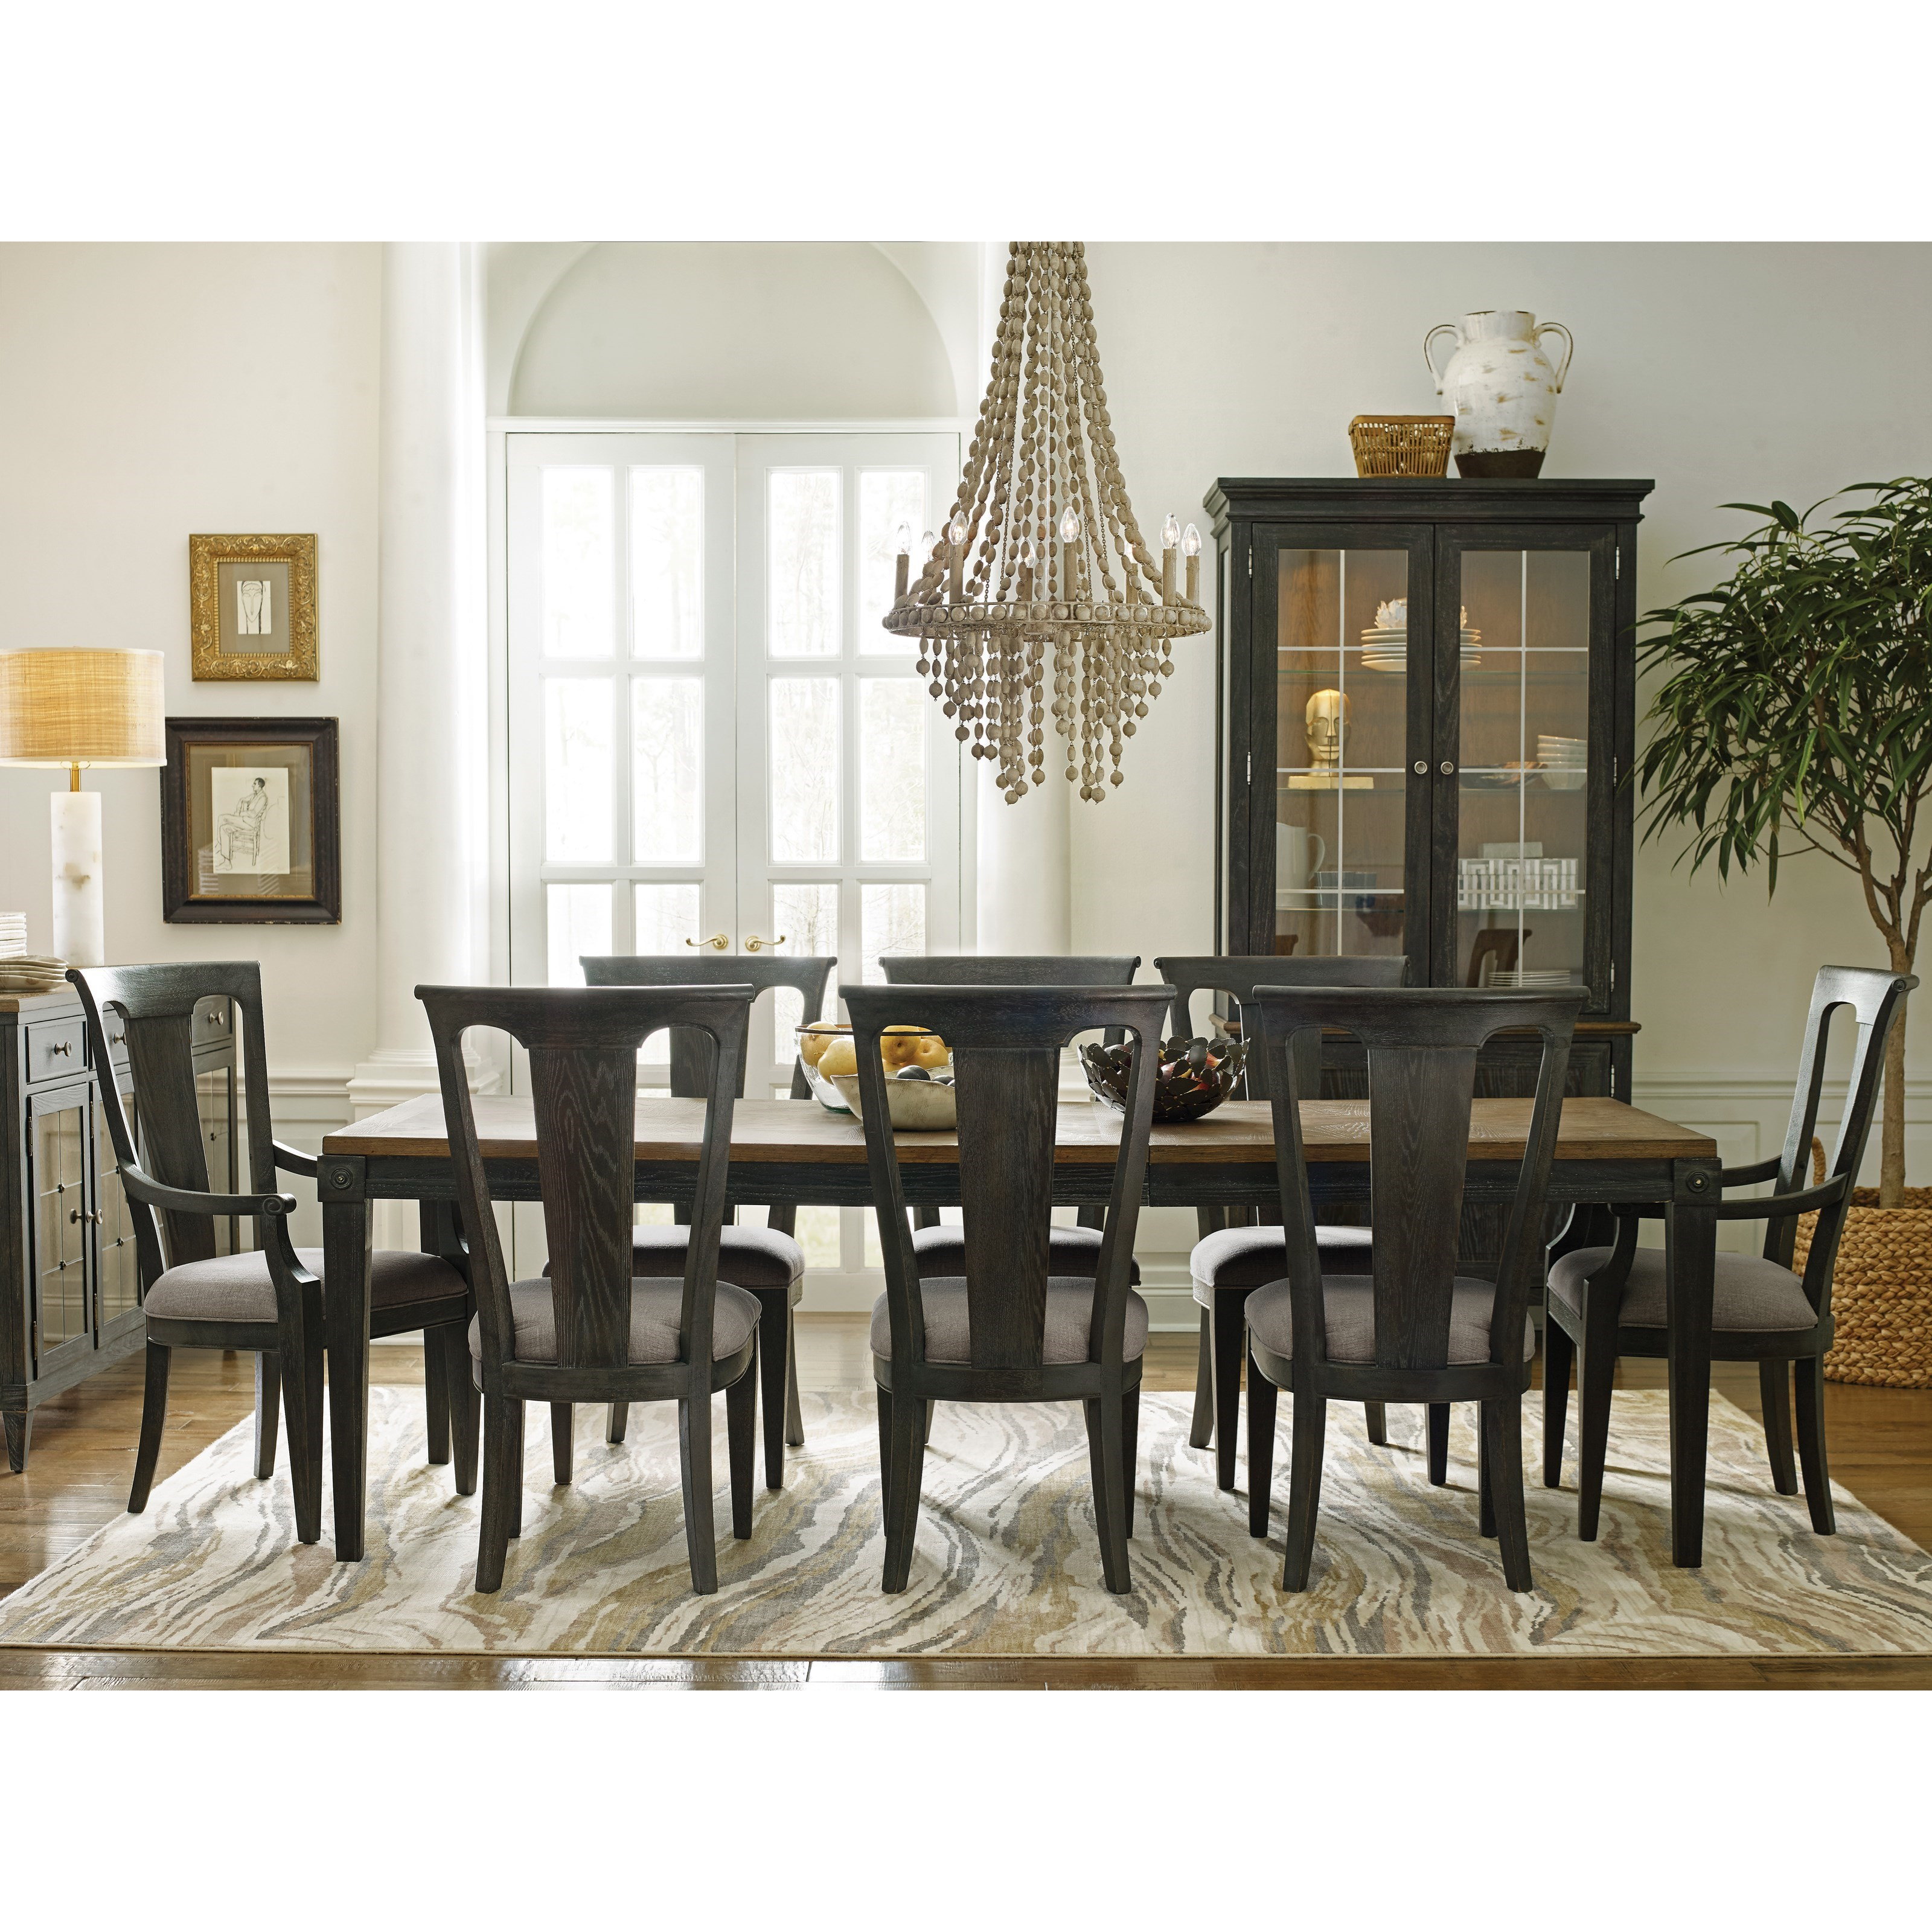 Ardennes Formal Dining Room Group by American Drew at Stoney Creek Furniture